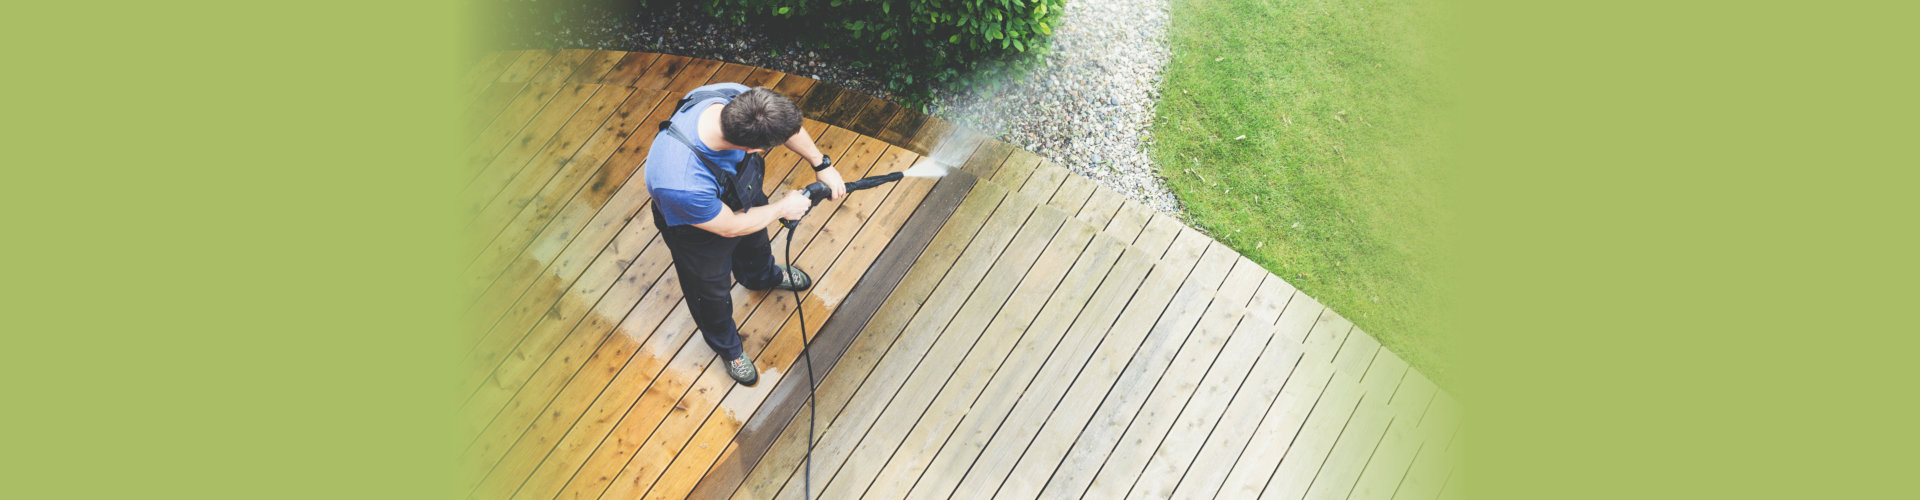 man cleaning terrace with a power washer - high water pressure